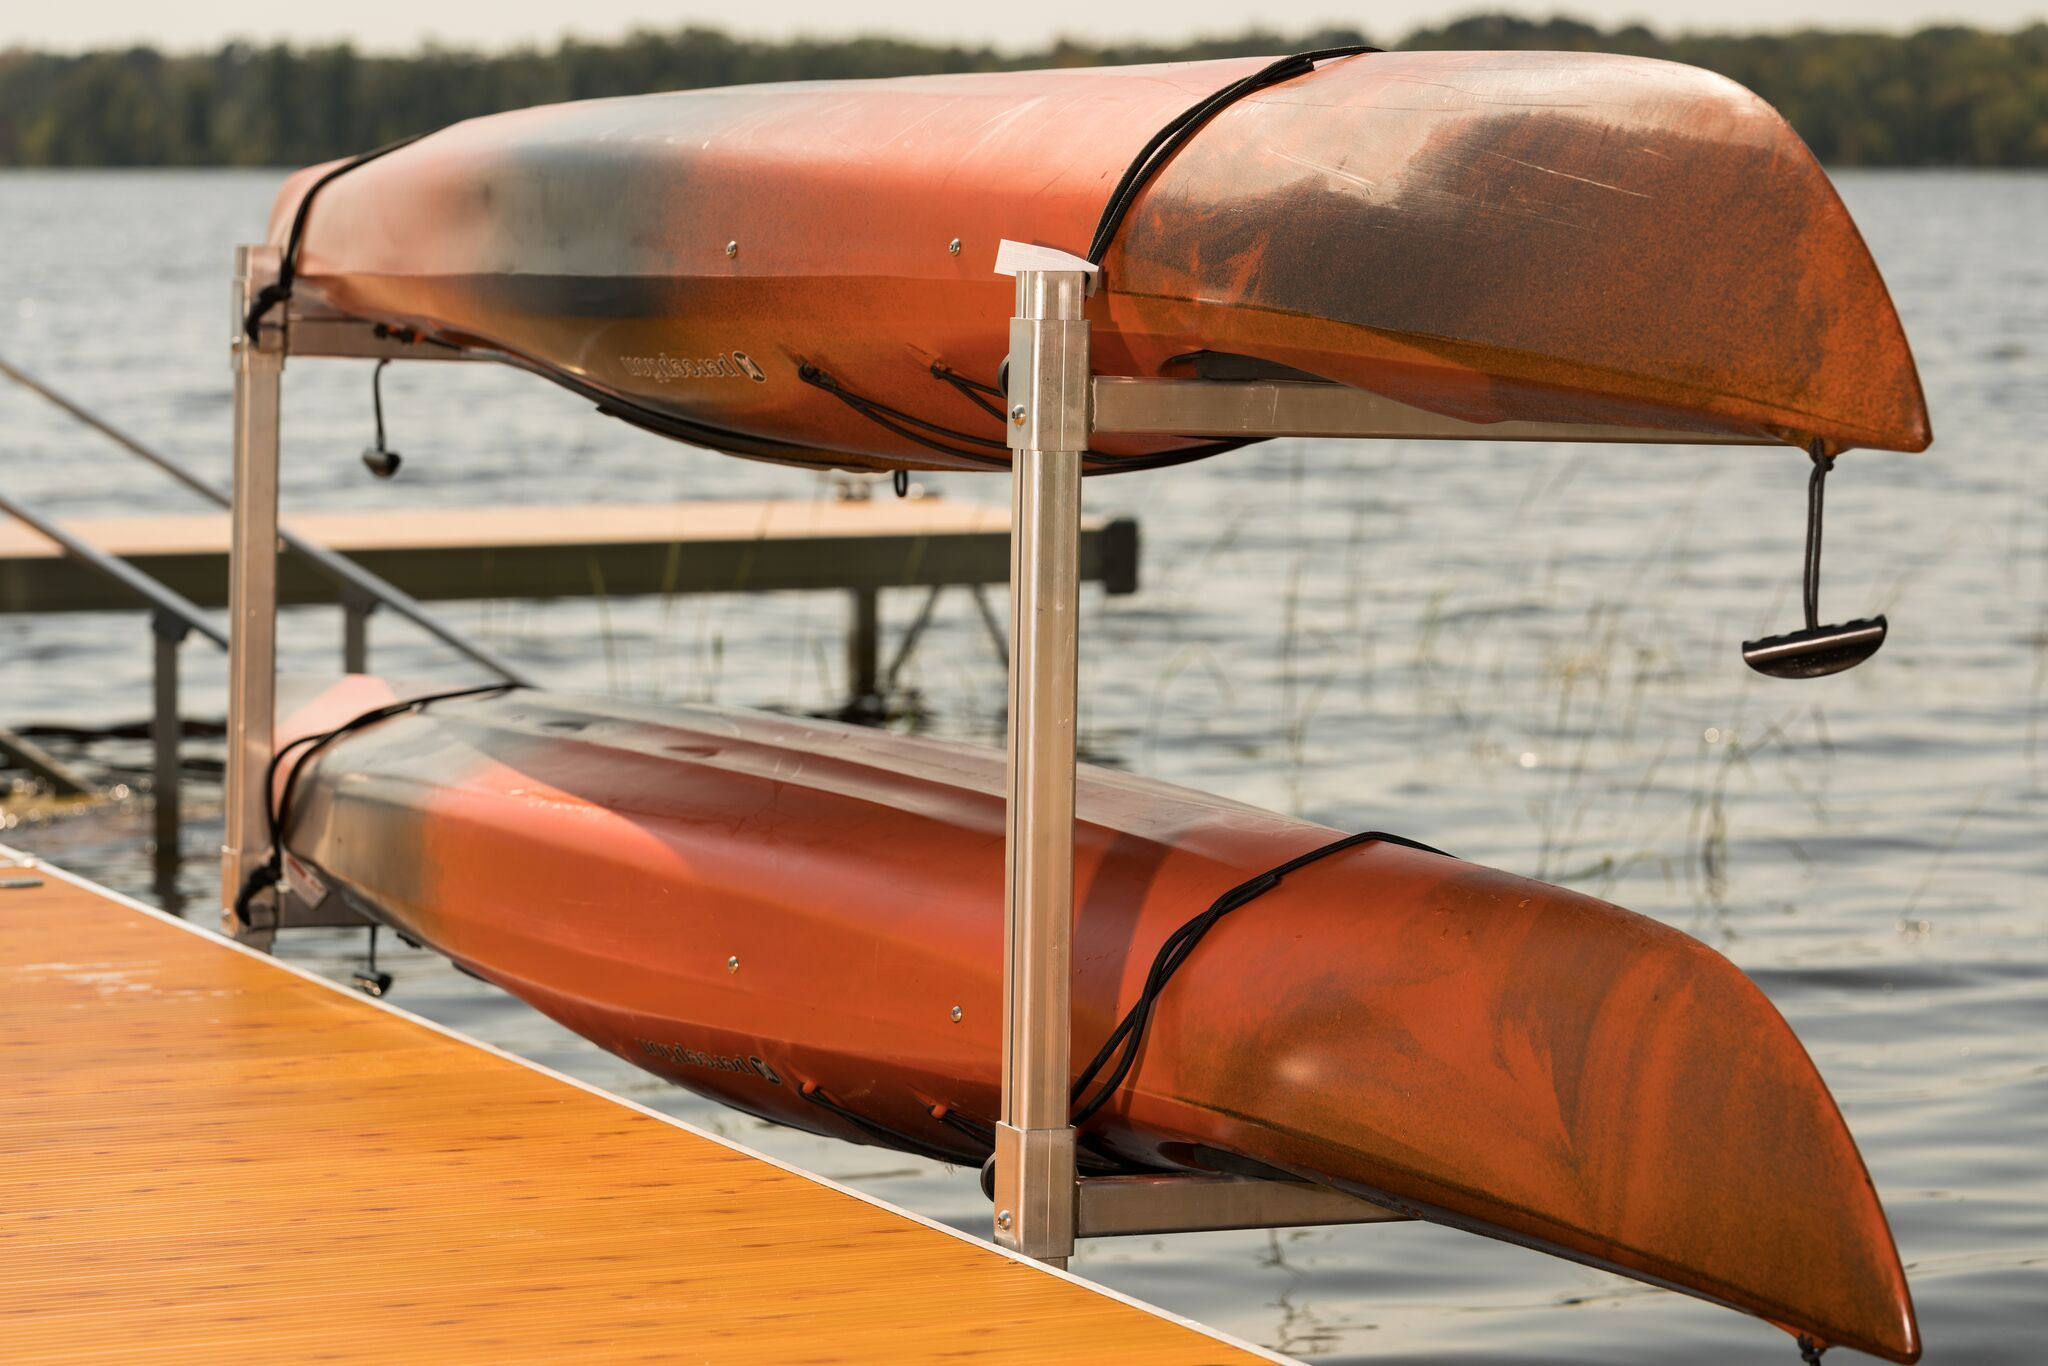 Modular Aluminum Roll In Docks Are Rock Solid And Easy To Install Floating Boat Docks Boat Lift Pontoon Boat